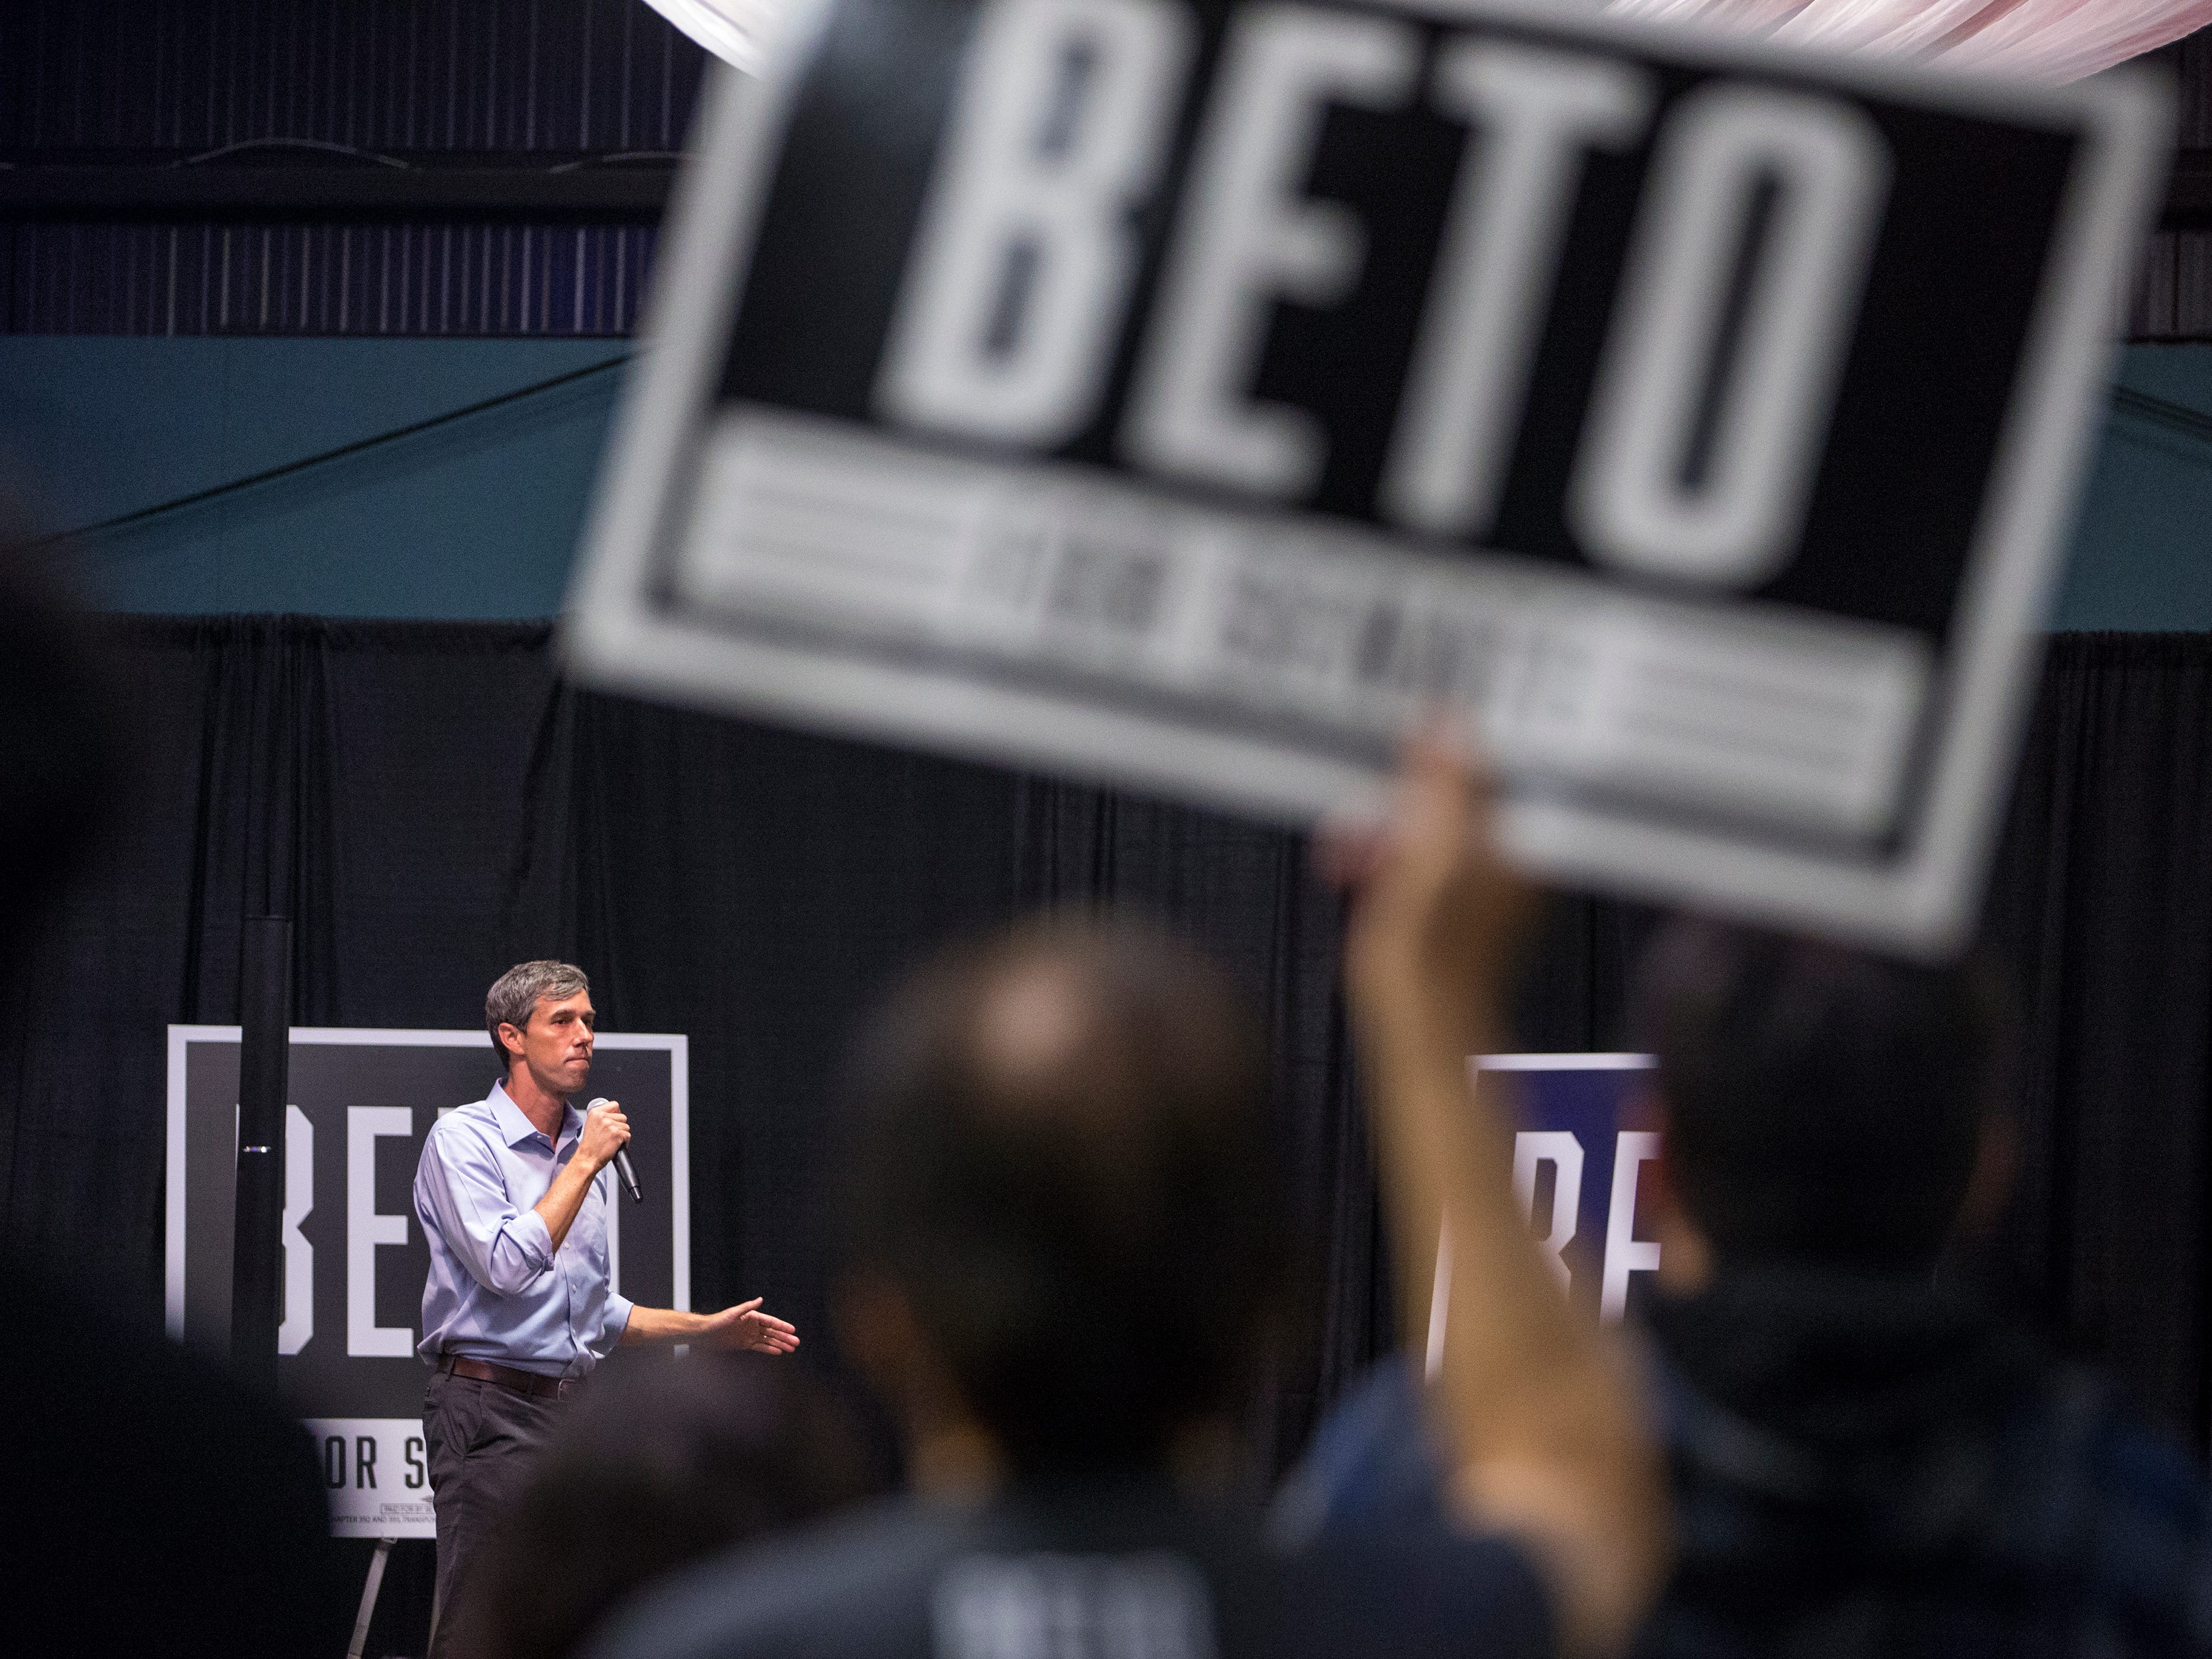 Democratic candidate Beto O'Rourke, who is running for U.S. Senate against Republican Ted Cruz, speaks to supporters at the Richard M. Borchard Regional Fairgrounds in Robstown on Thursday, November 1, 2018.